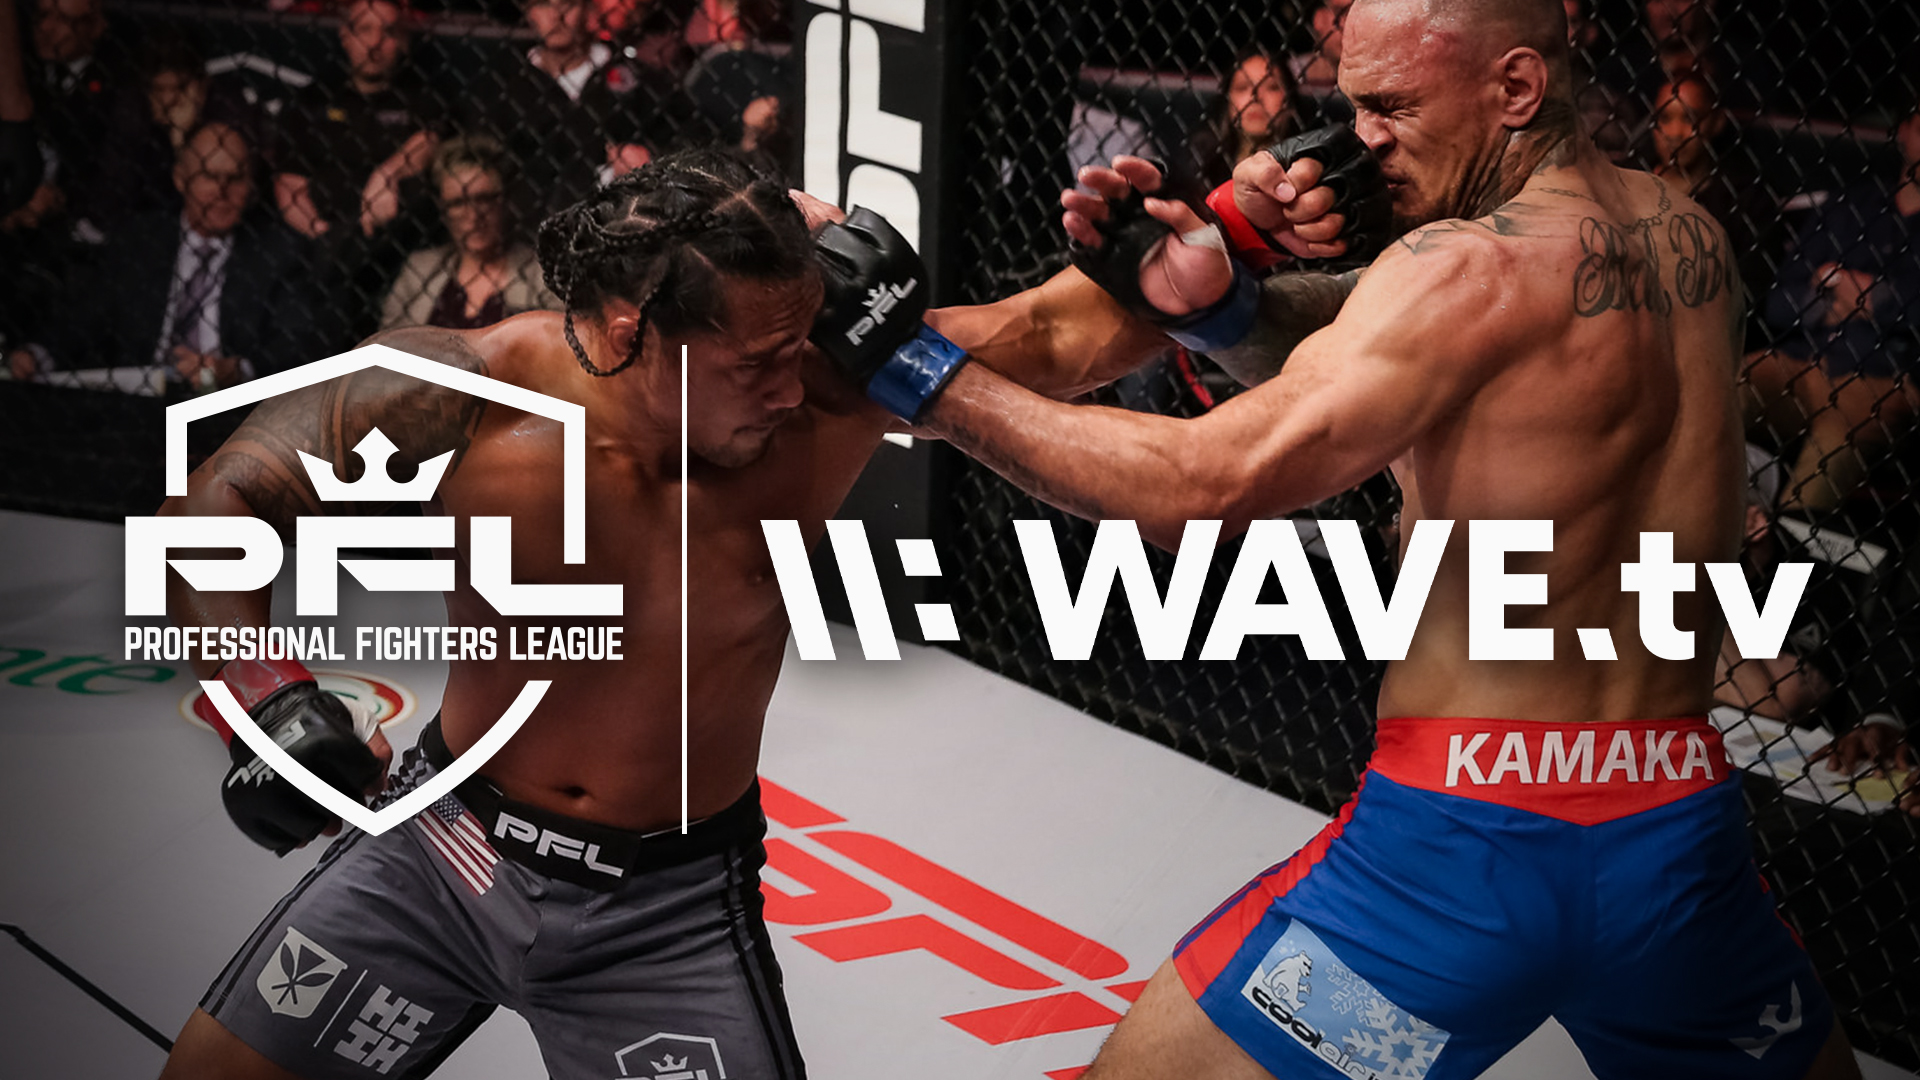 PFL makes content and distribution partnership deal with WAVE.tv